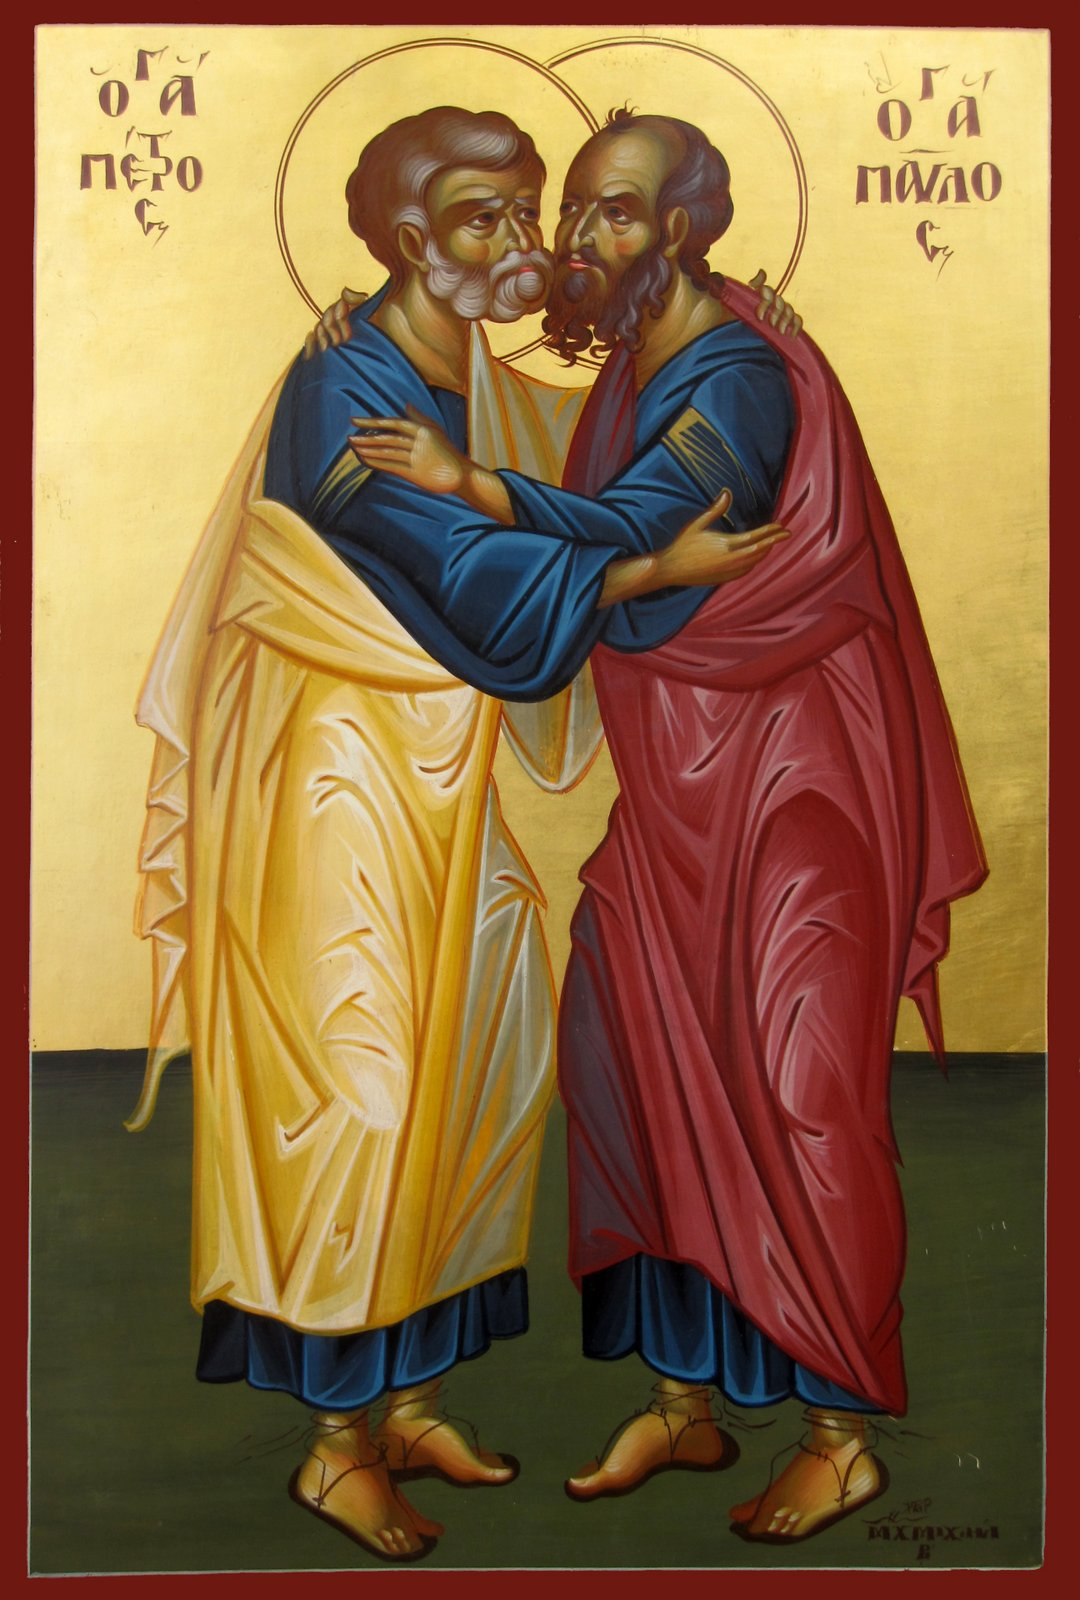 The all-glorious chiefs of the Apostles, Peter and Paul